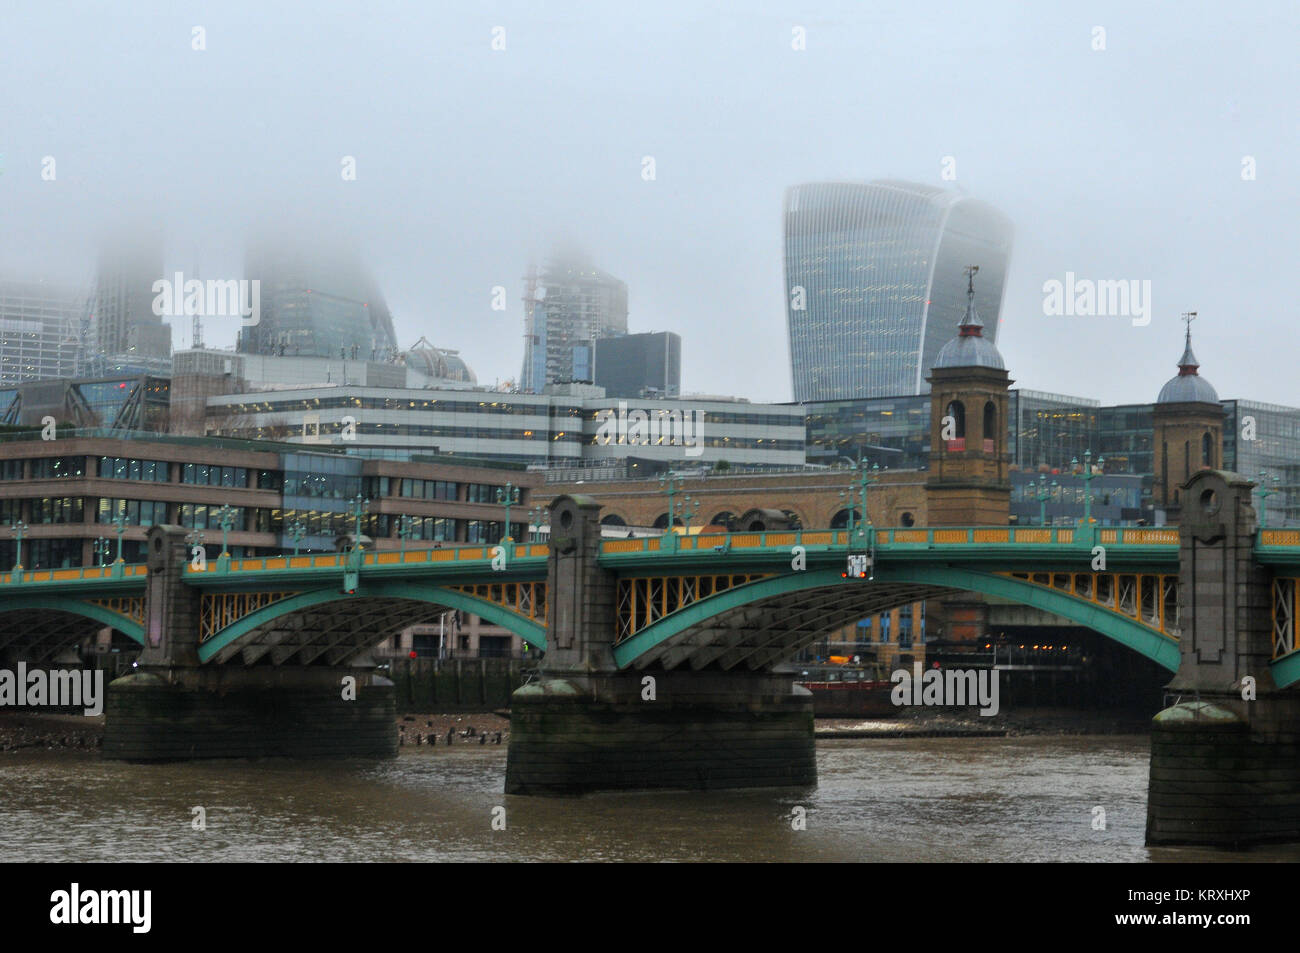 London, UK. 21st Dec, 2017. a misty or foggy morning over the river Thames with Southwark Bride and Cannon Street - Stock Image